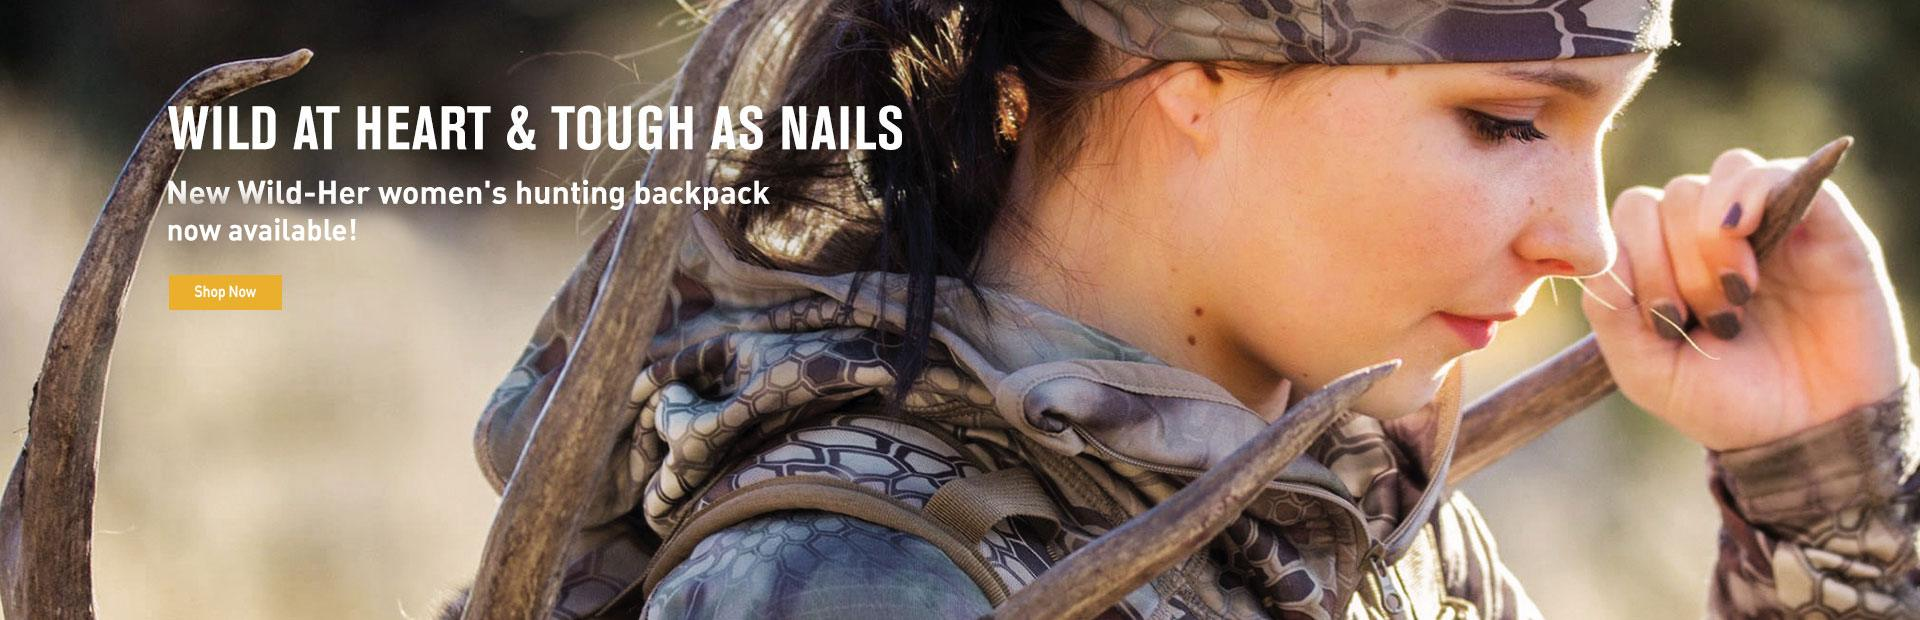 New Wild-Her Women's Hunting Backpack is Coming Soon!